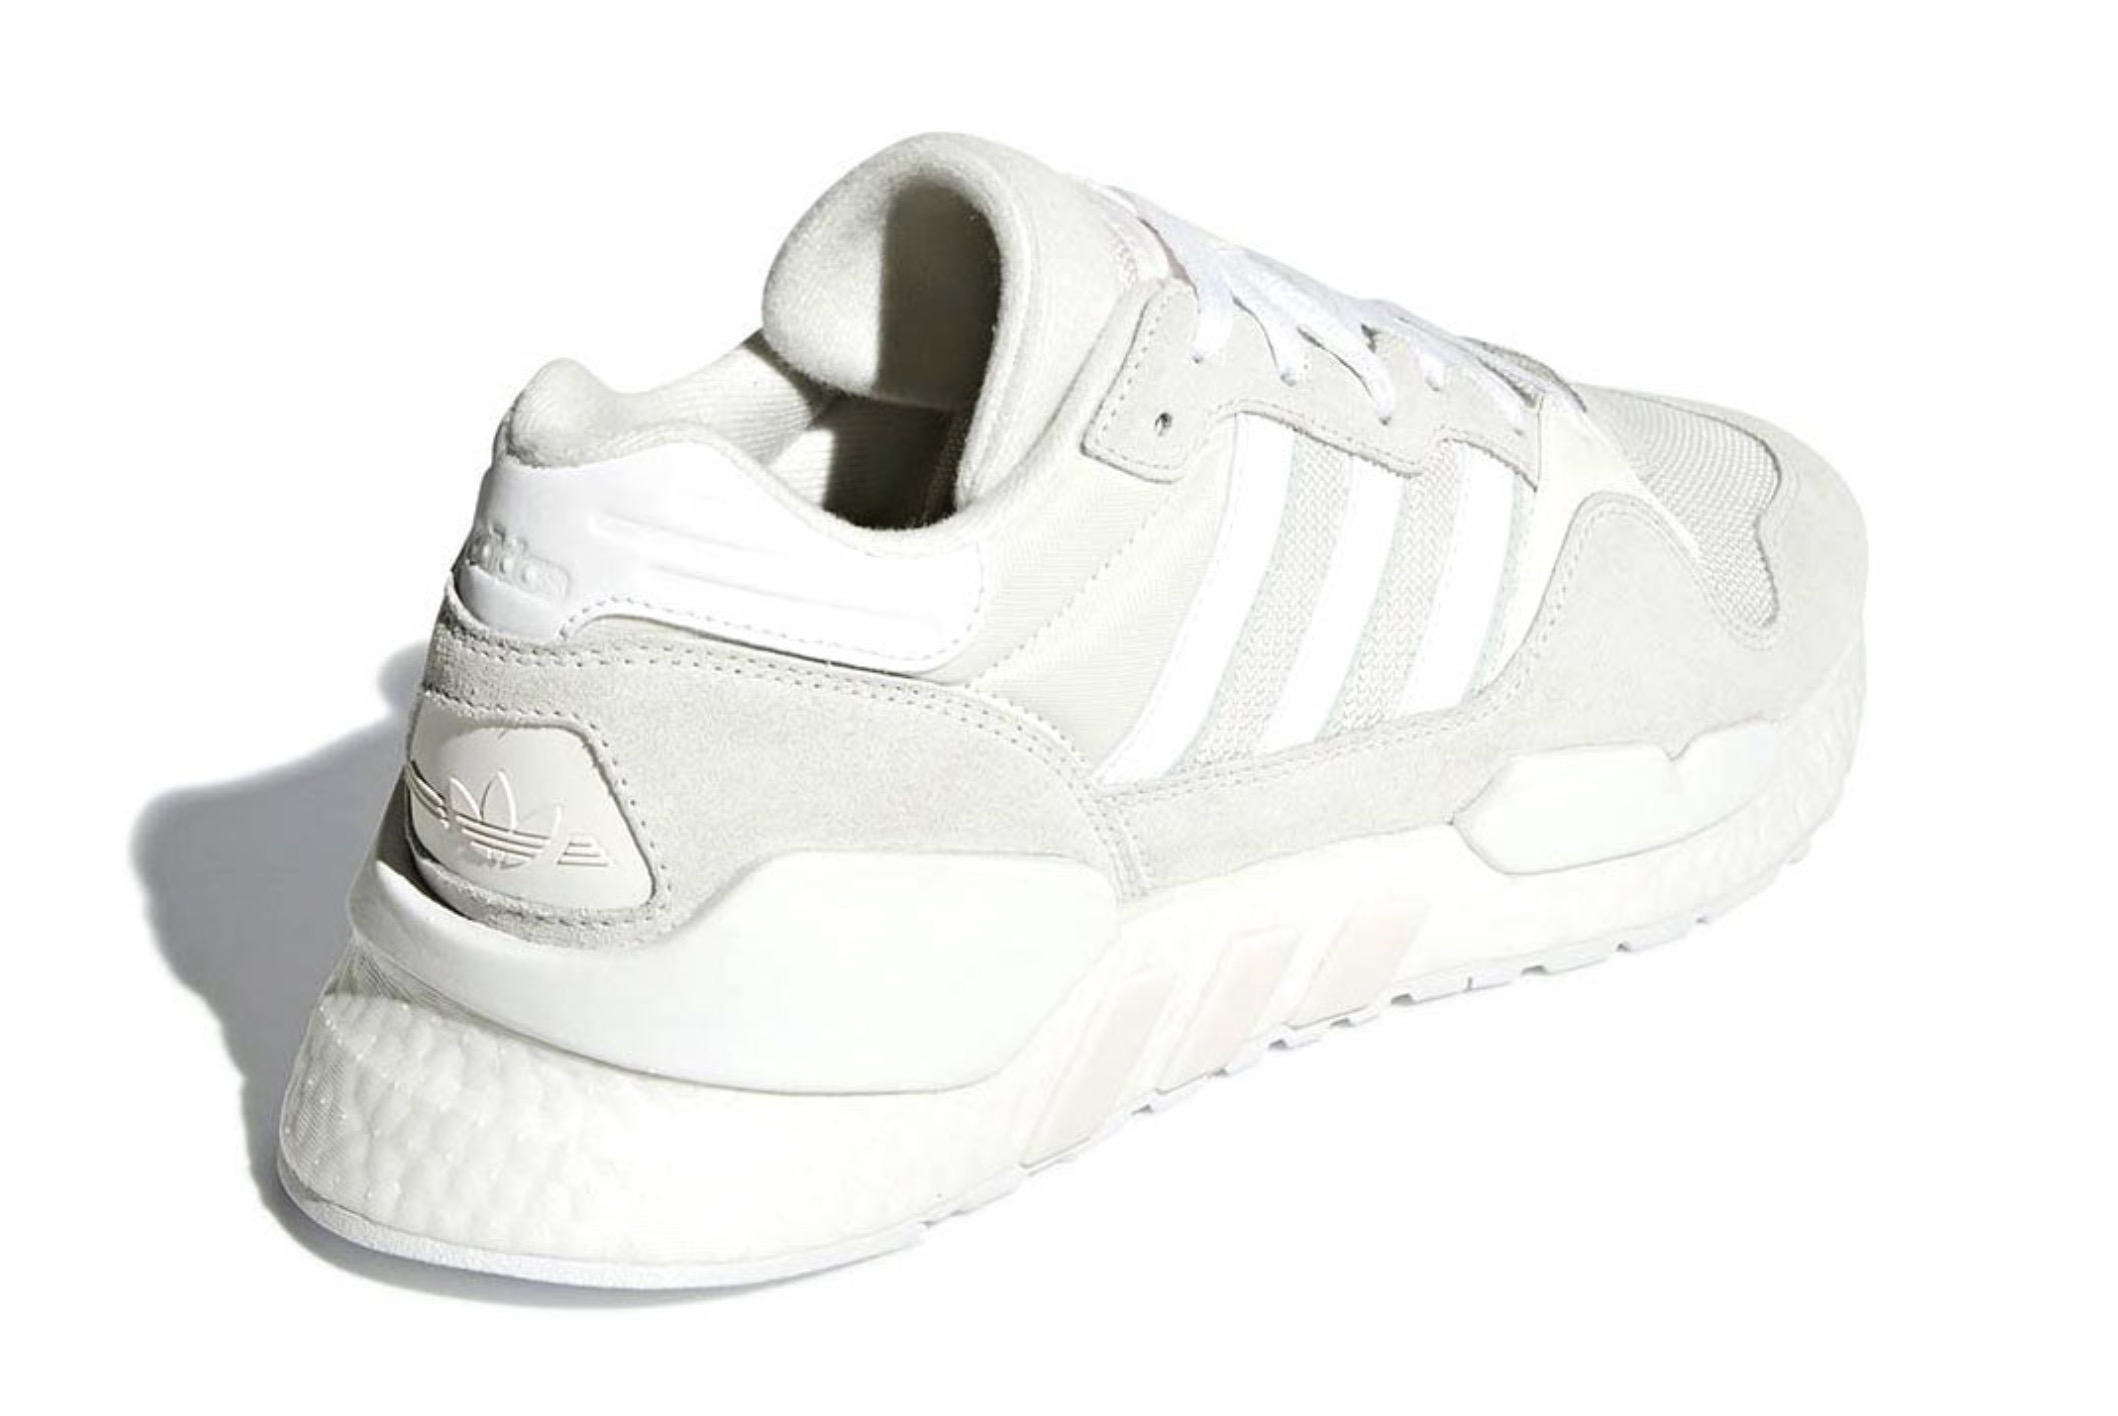 promo code c6793 c4272 The adidas ZX 930 EQT BOOST Is Fresh In White And Grey ...